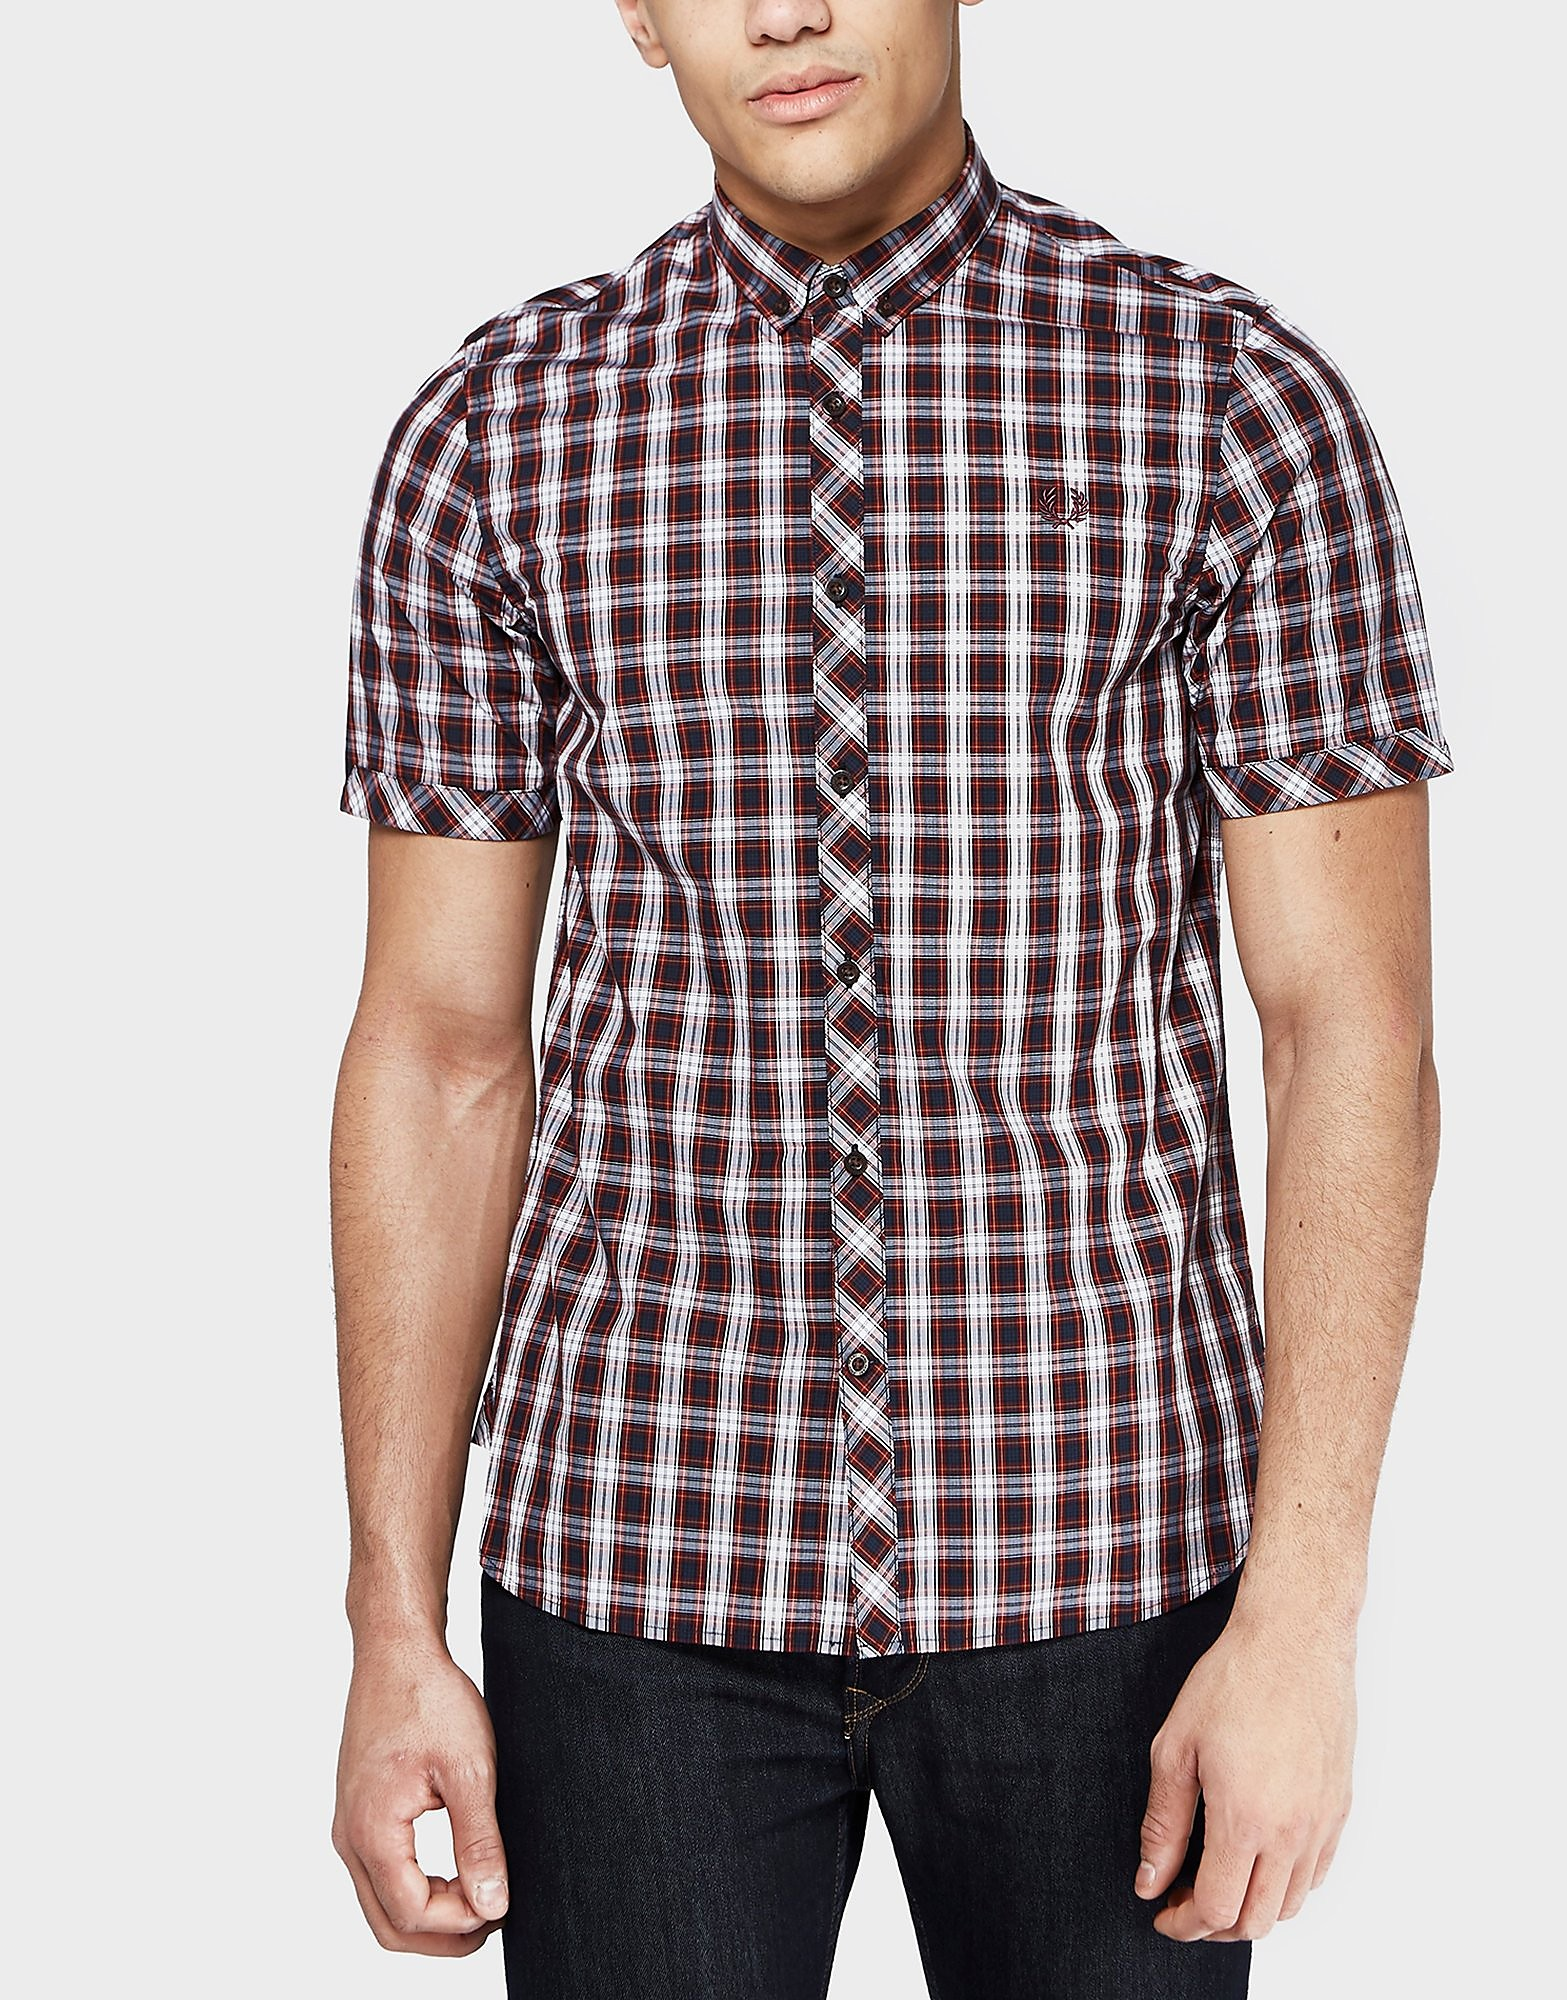 Fred Perry Summer Shirt